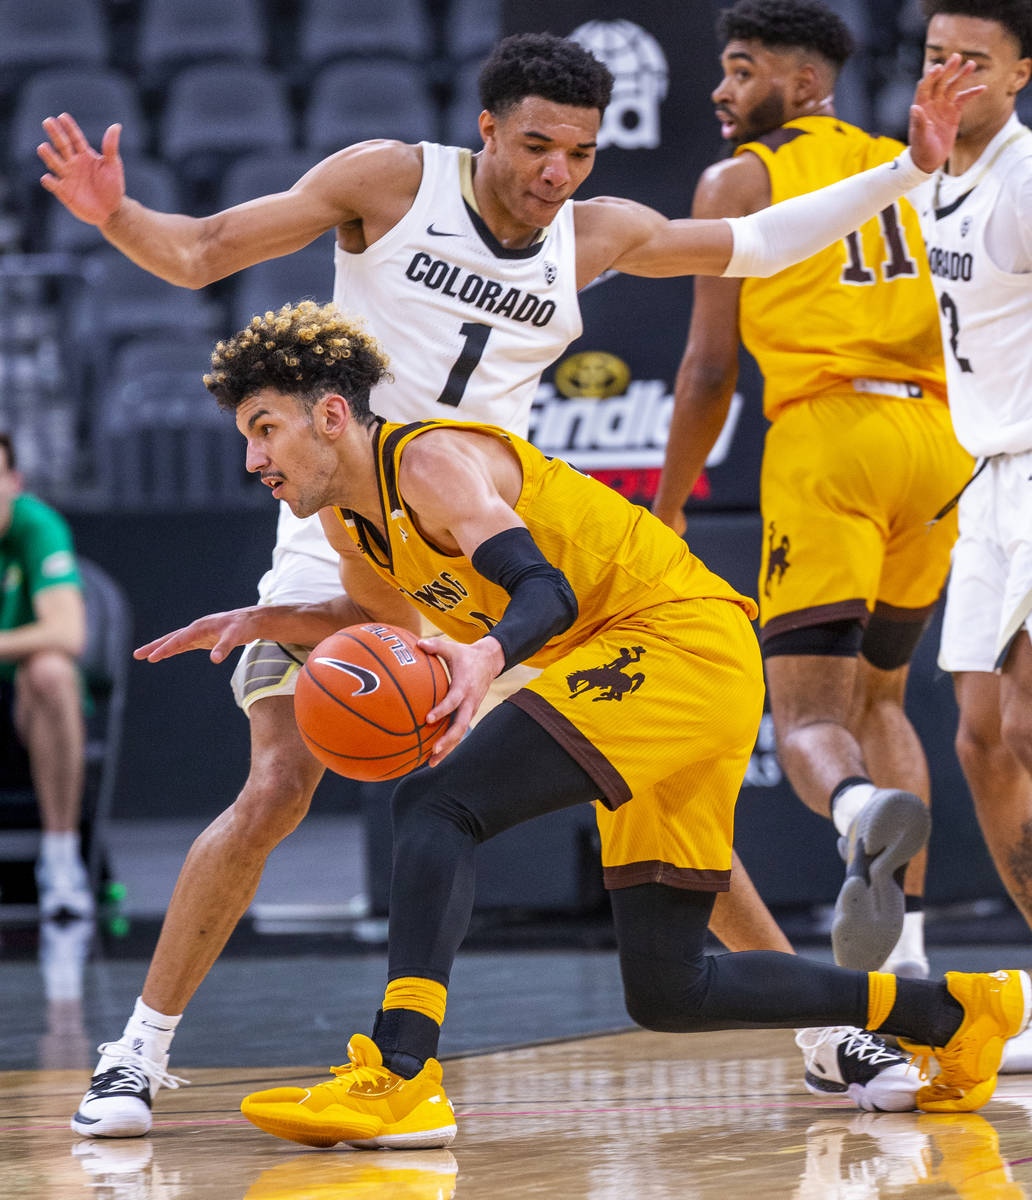 Colorado guard Tyler Bey (1, above) defends the lane over Wyoming guard Hunter Maldonado (24) d ...